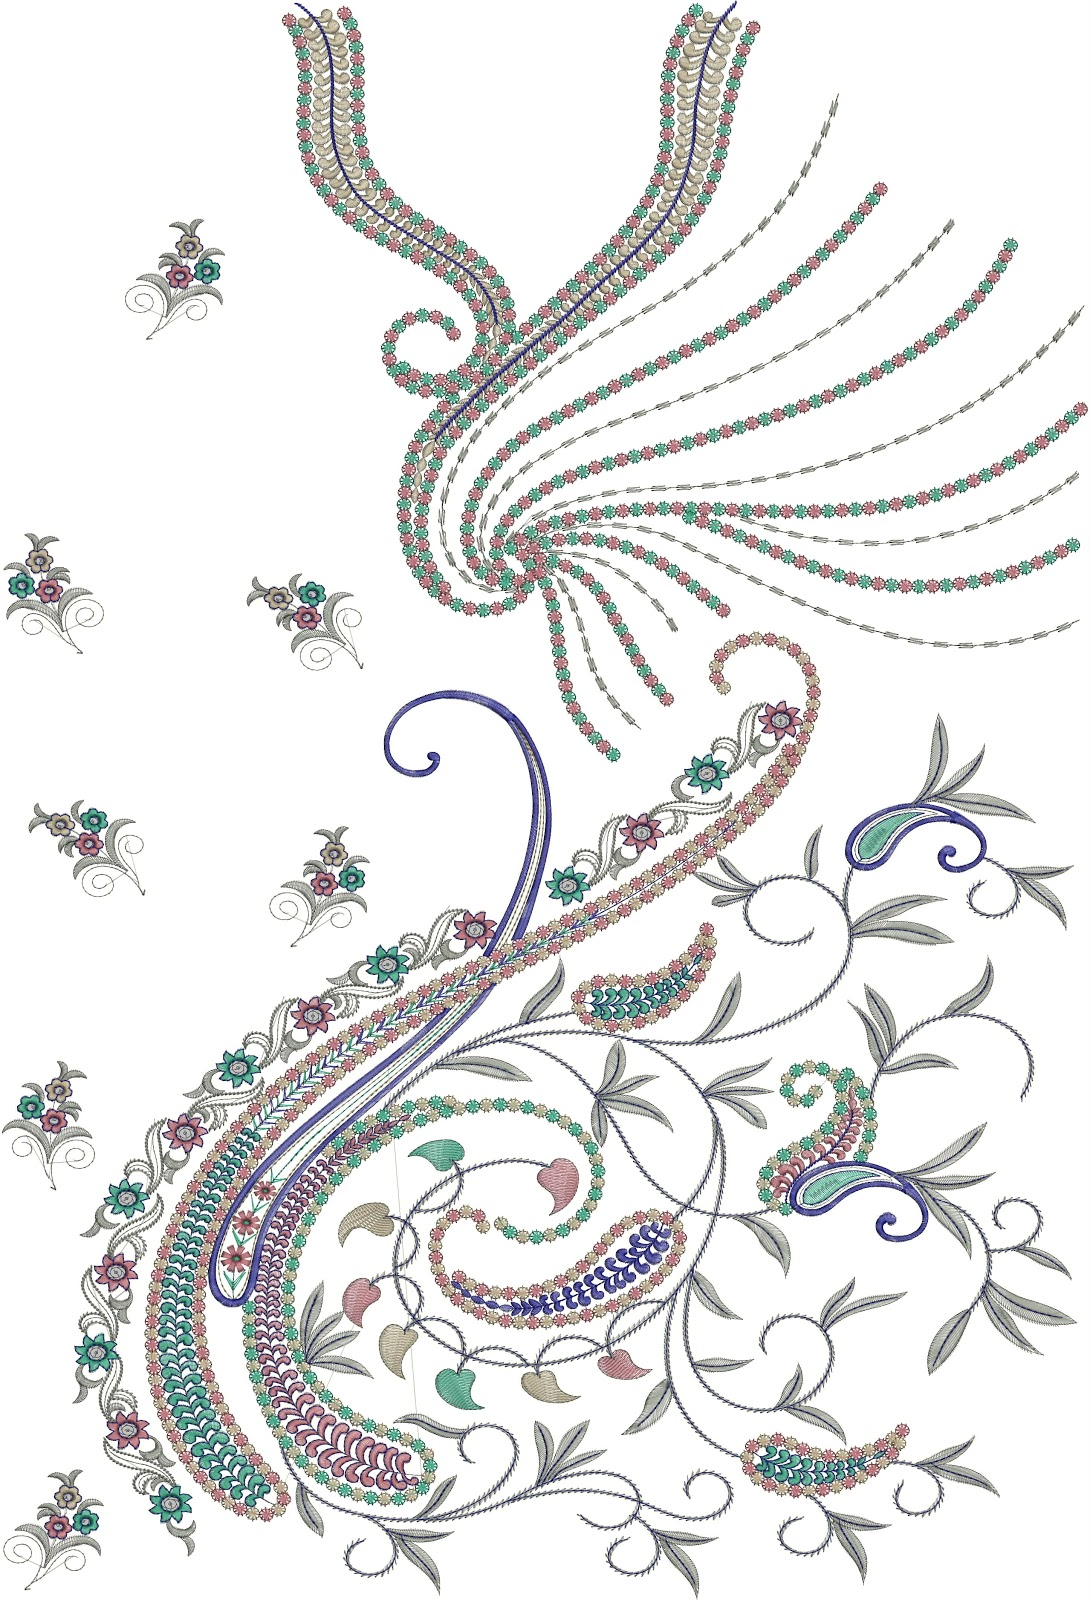 Embdesigntube dresses with full top embroidery design for Embroidery office design 7 5 full